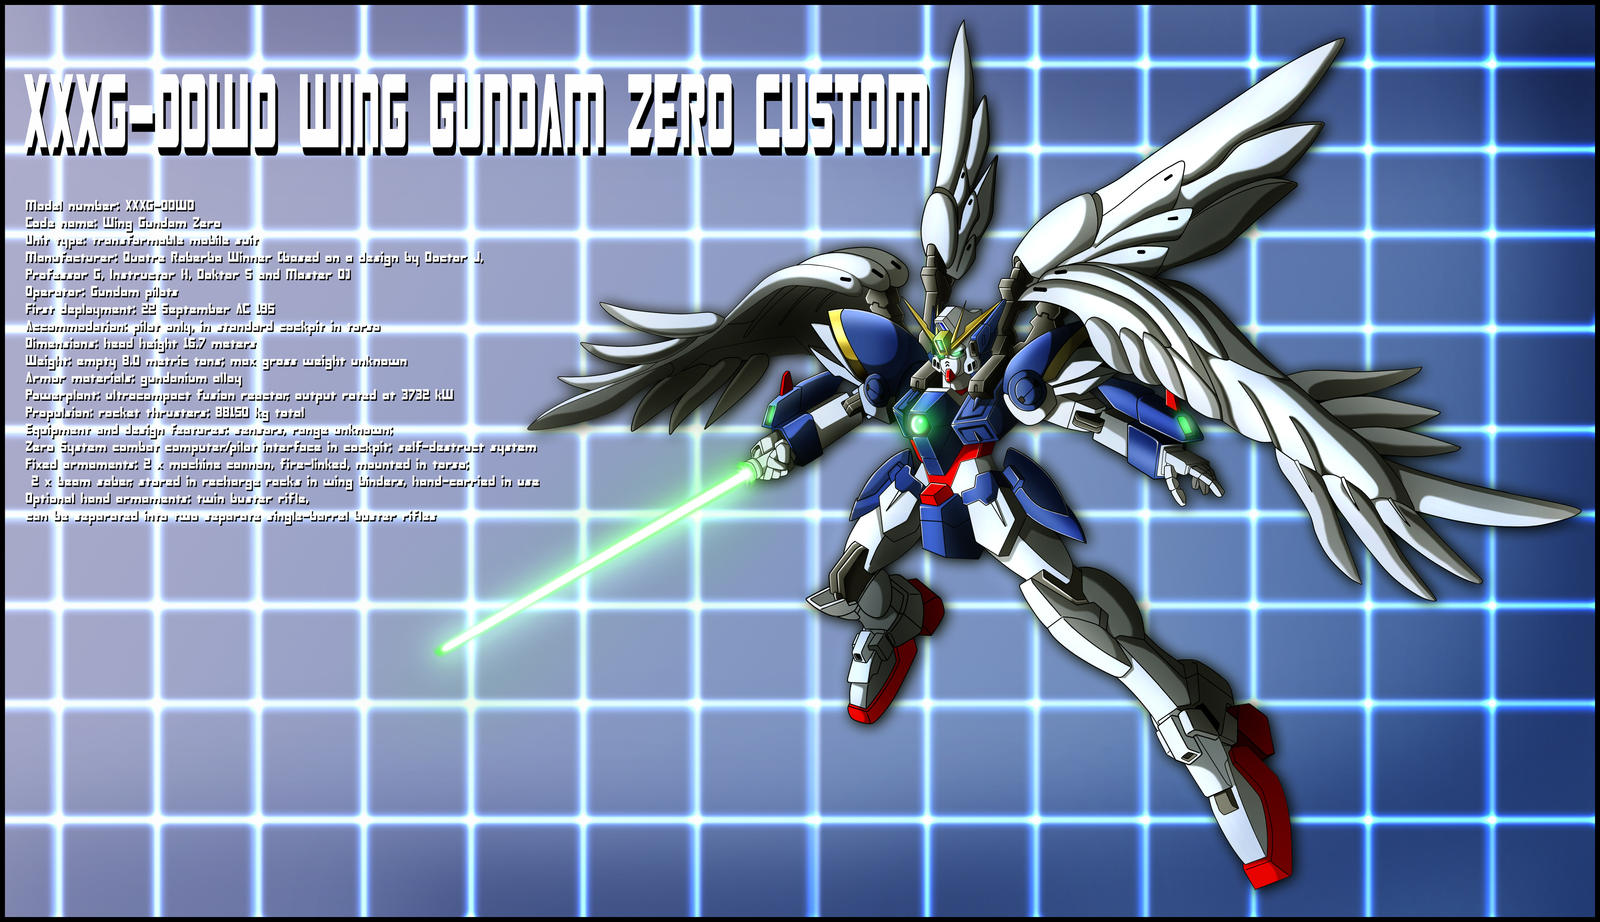 Wing Gundam Zero Custom Profile by zeiram0034